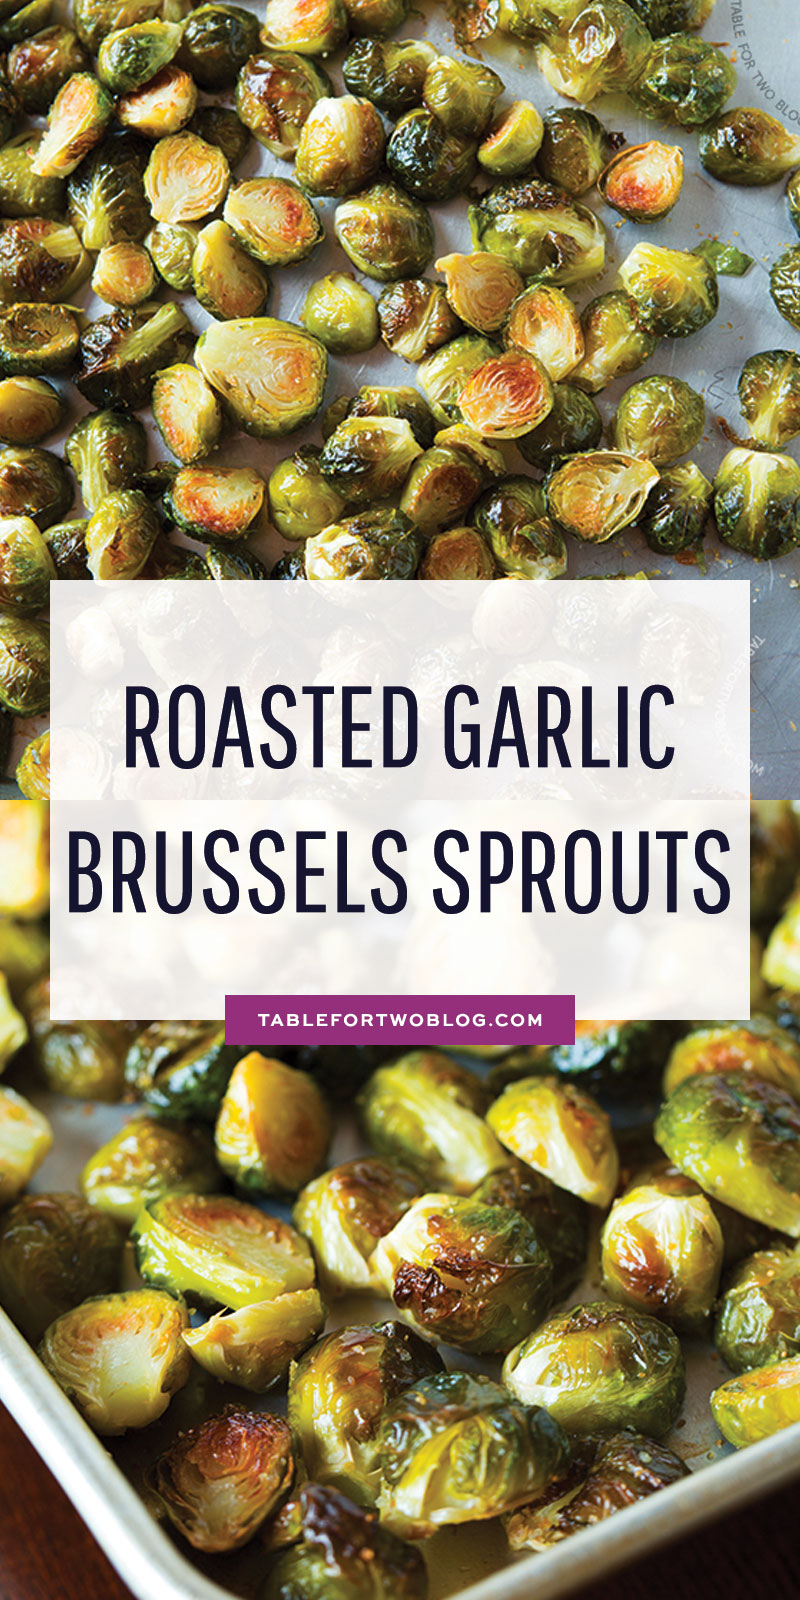 Roasted garlic brussels sprouts are the best, and quite frankly, only way to eat Brussels sprouts. If you make them this way, I promise you that you will be a Brussels sprouts LOVER! #roastedvegetable #roastedbrusselssprouts #brusselssprouts